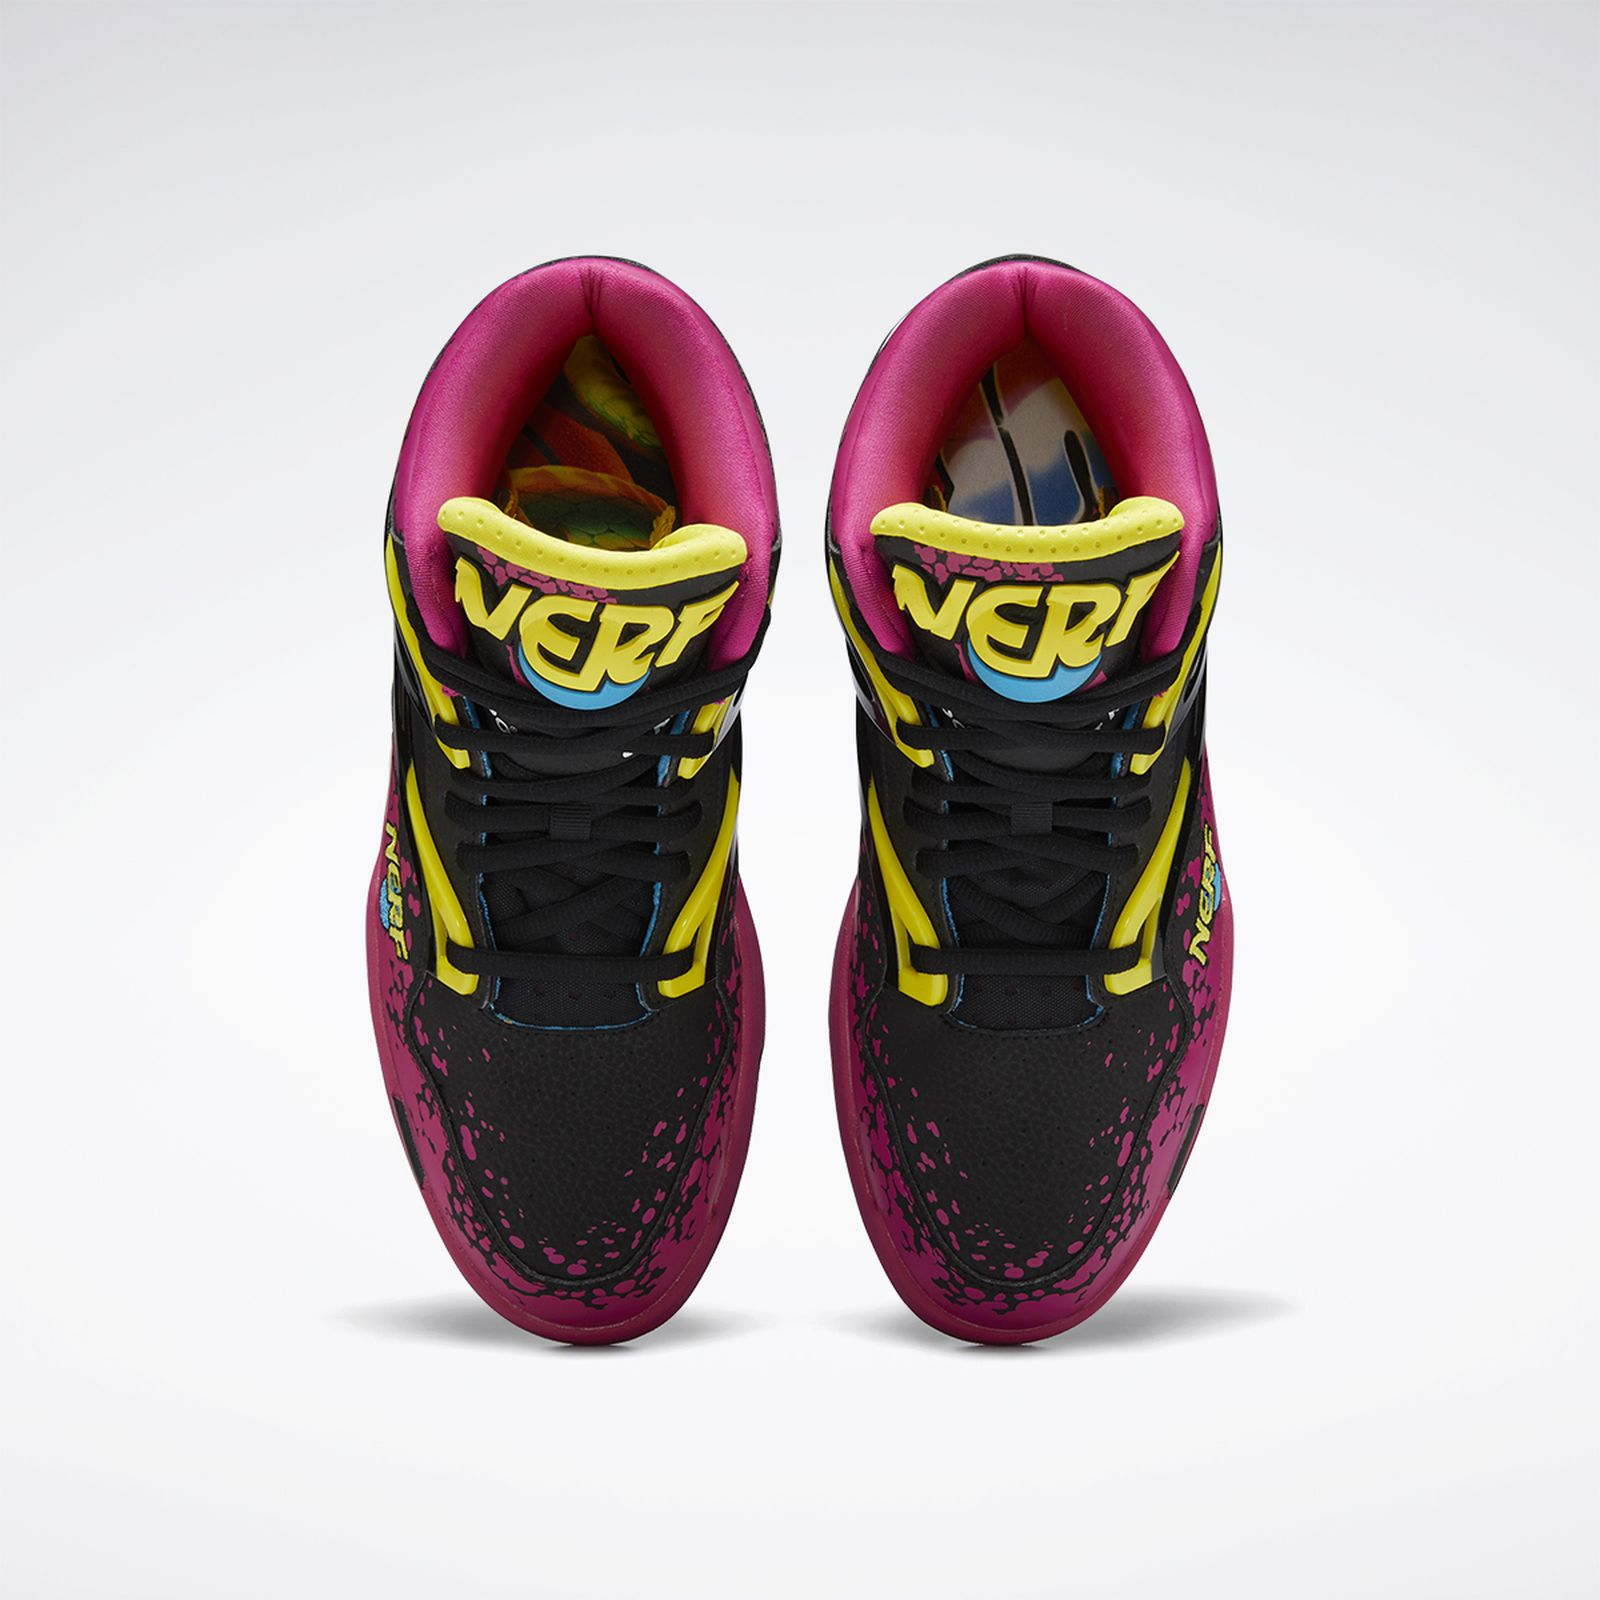 nerf-reebok-retro-basketball-collection-release-date-price-14